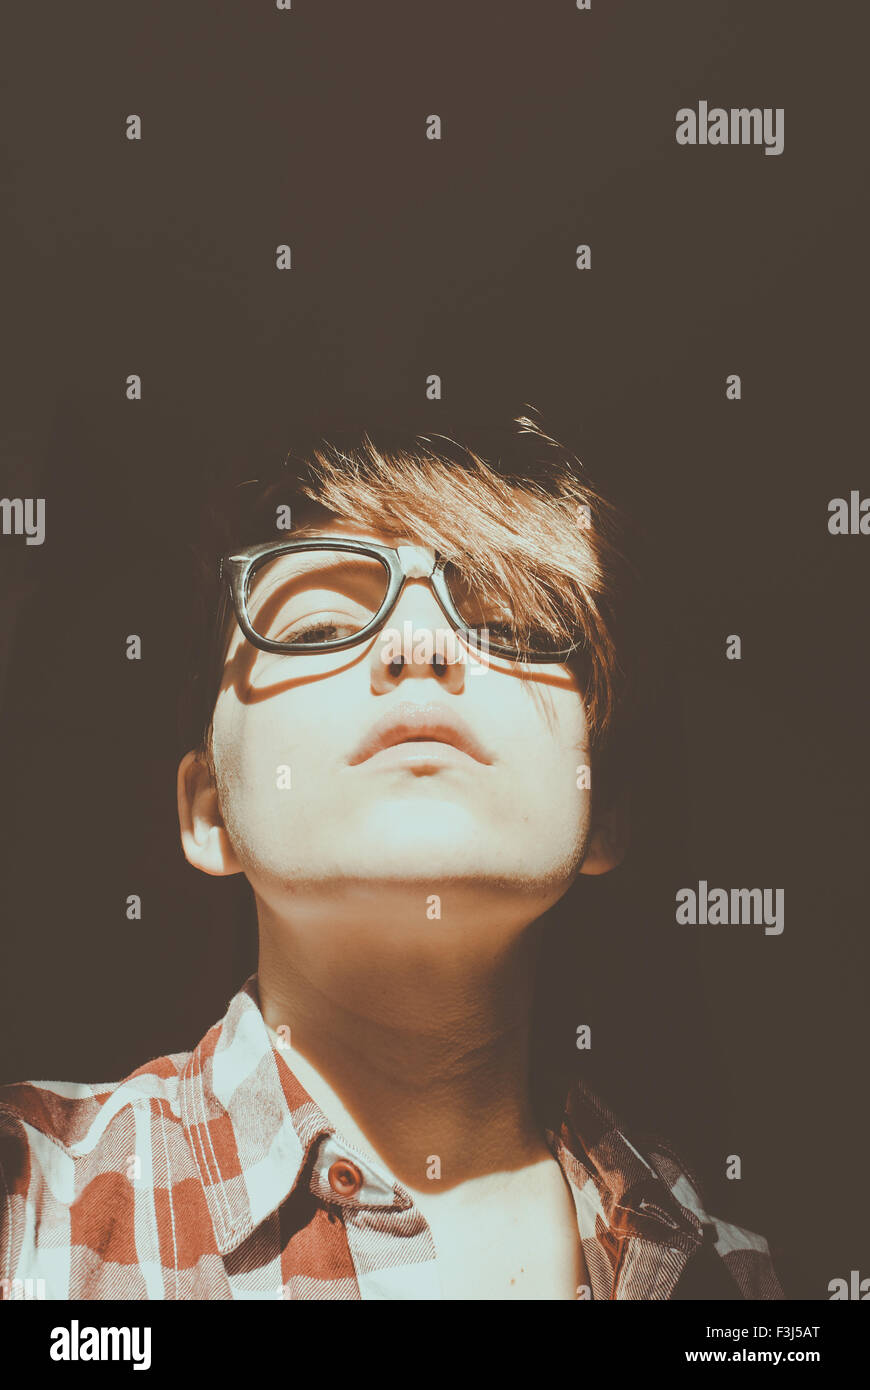 Young hipster girl wearing glasses - Stock Image